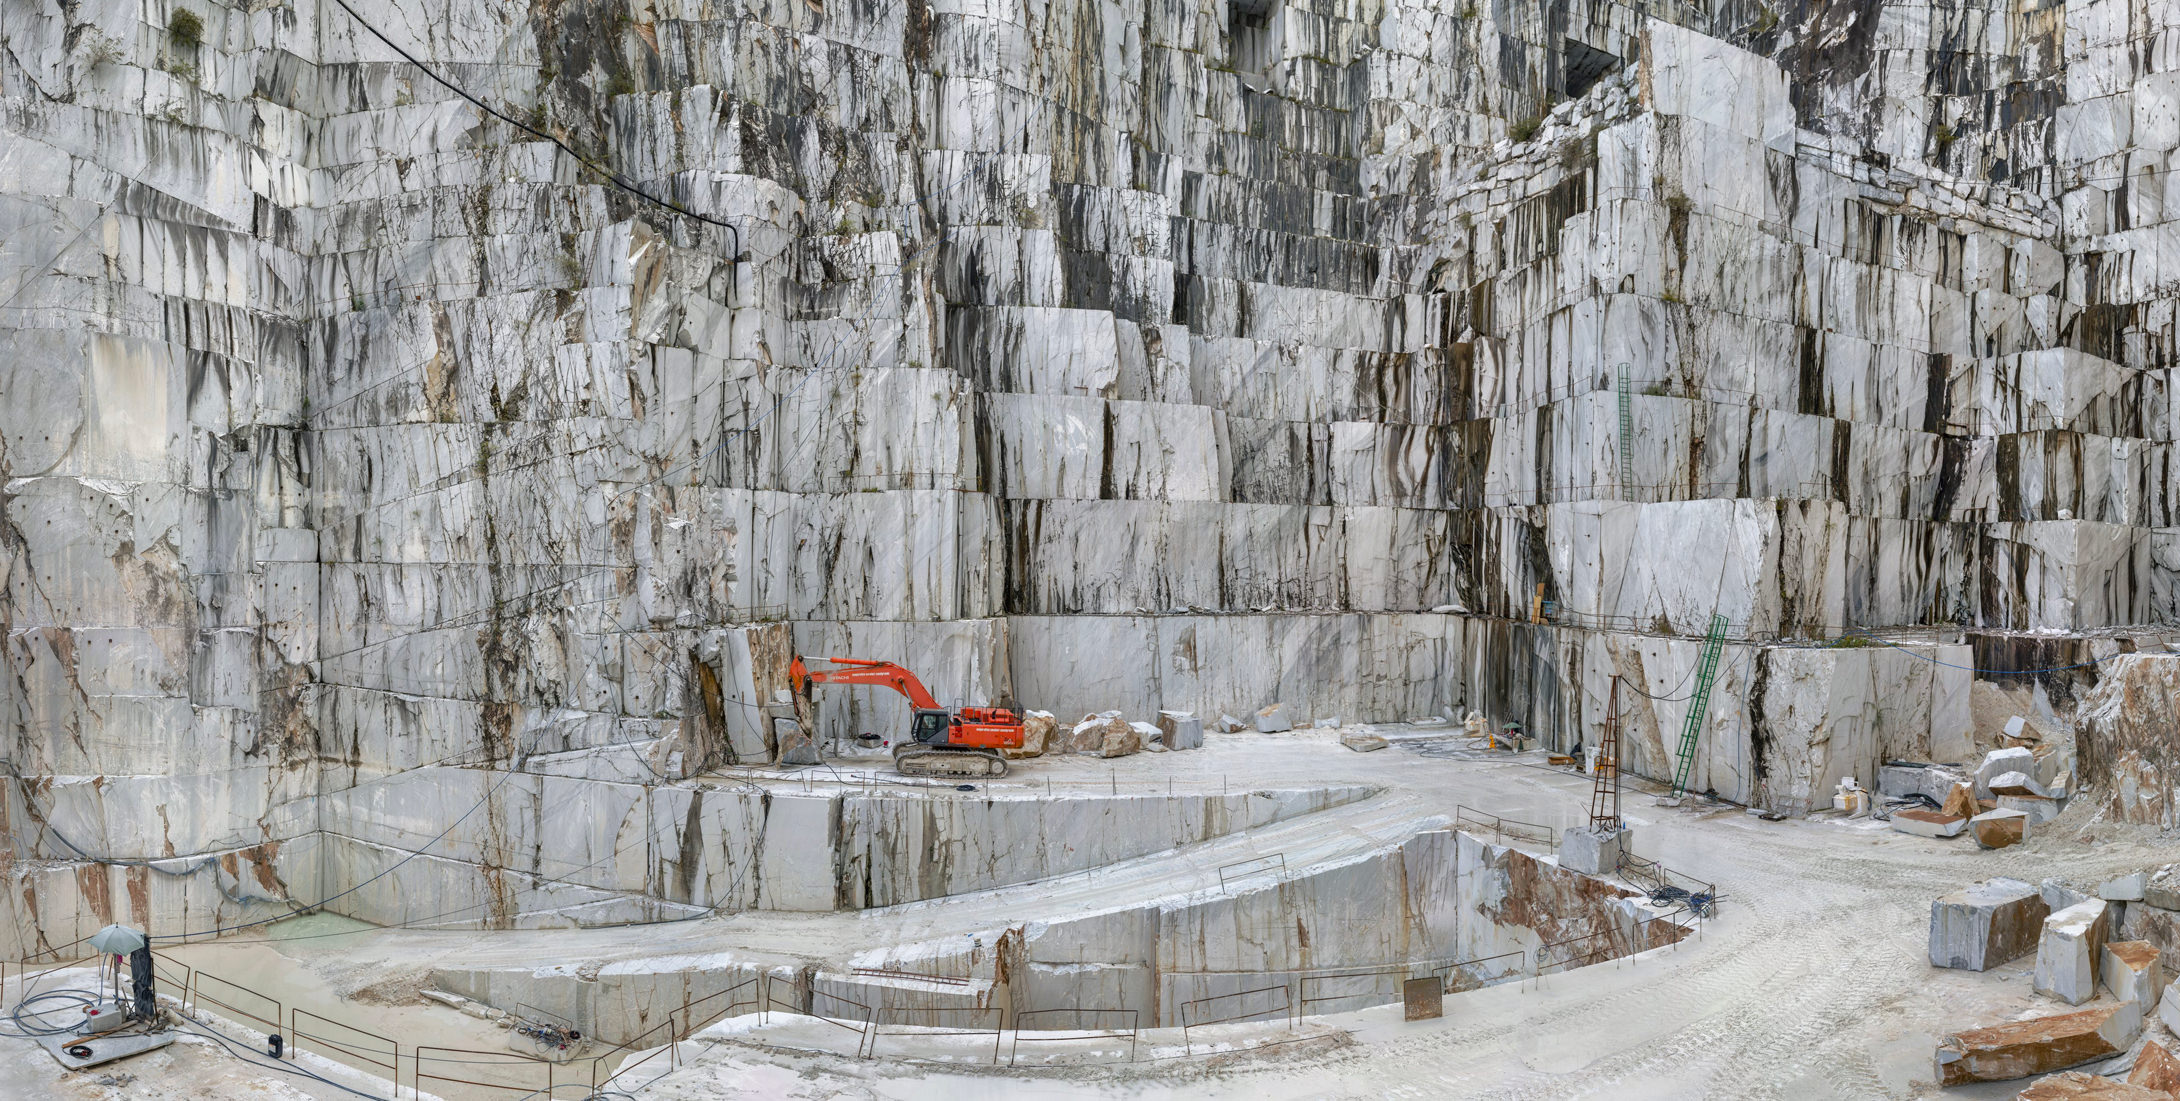 Edward Burtynsky Photographie Carrara Marble Quarries Cava Di Canalgrande No2 Carrara Italie 2016